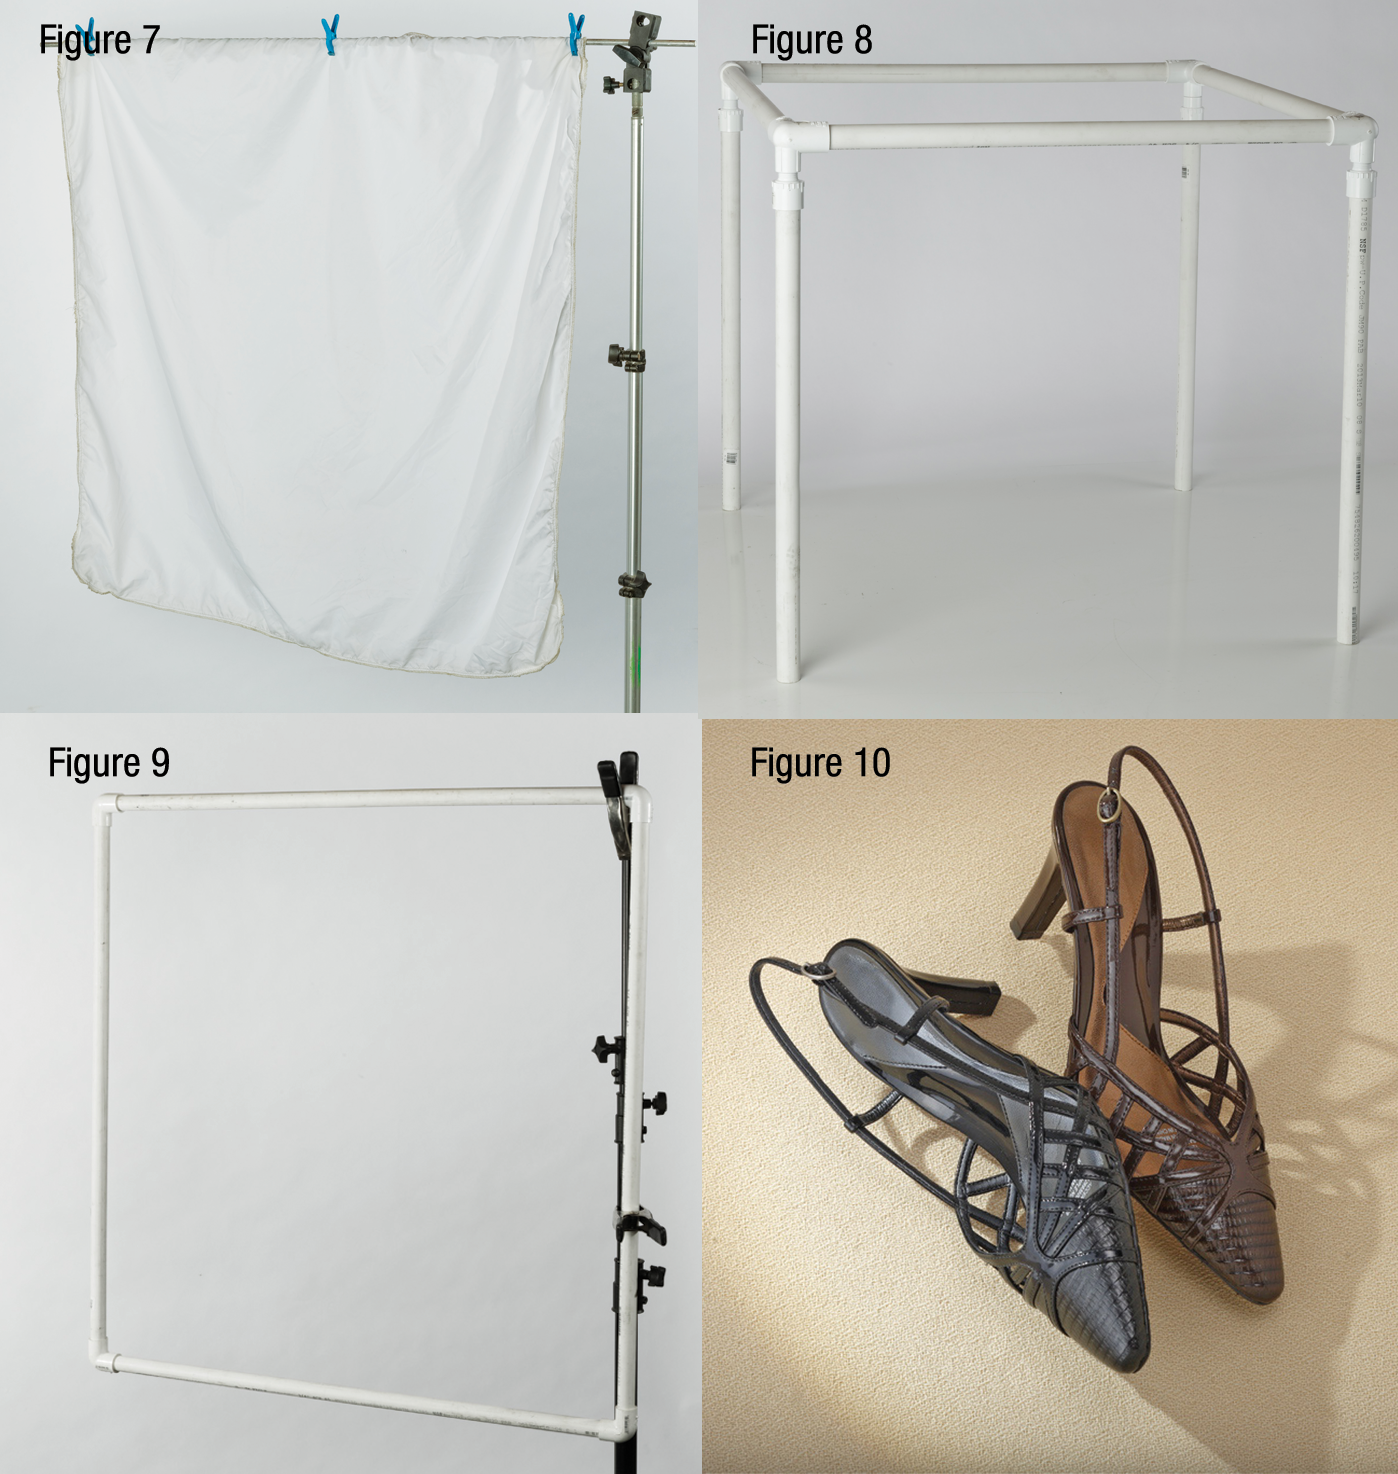 Example of a simple PVC and scrim setup [Figs. 7-9], and the final example of shoes [Fig. 10] with nice shadows.